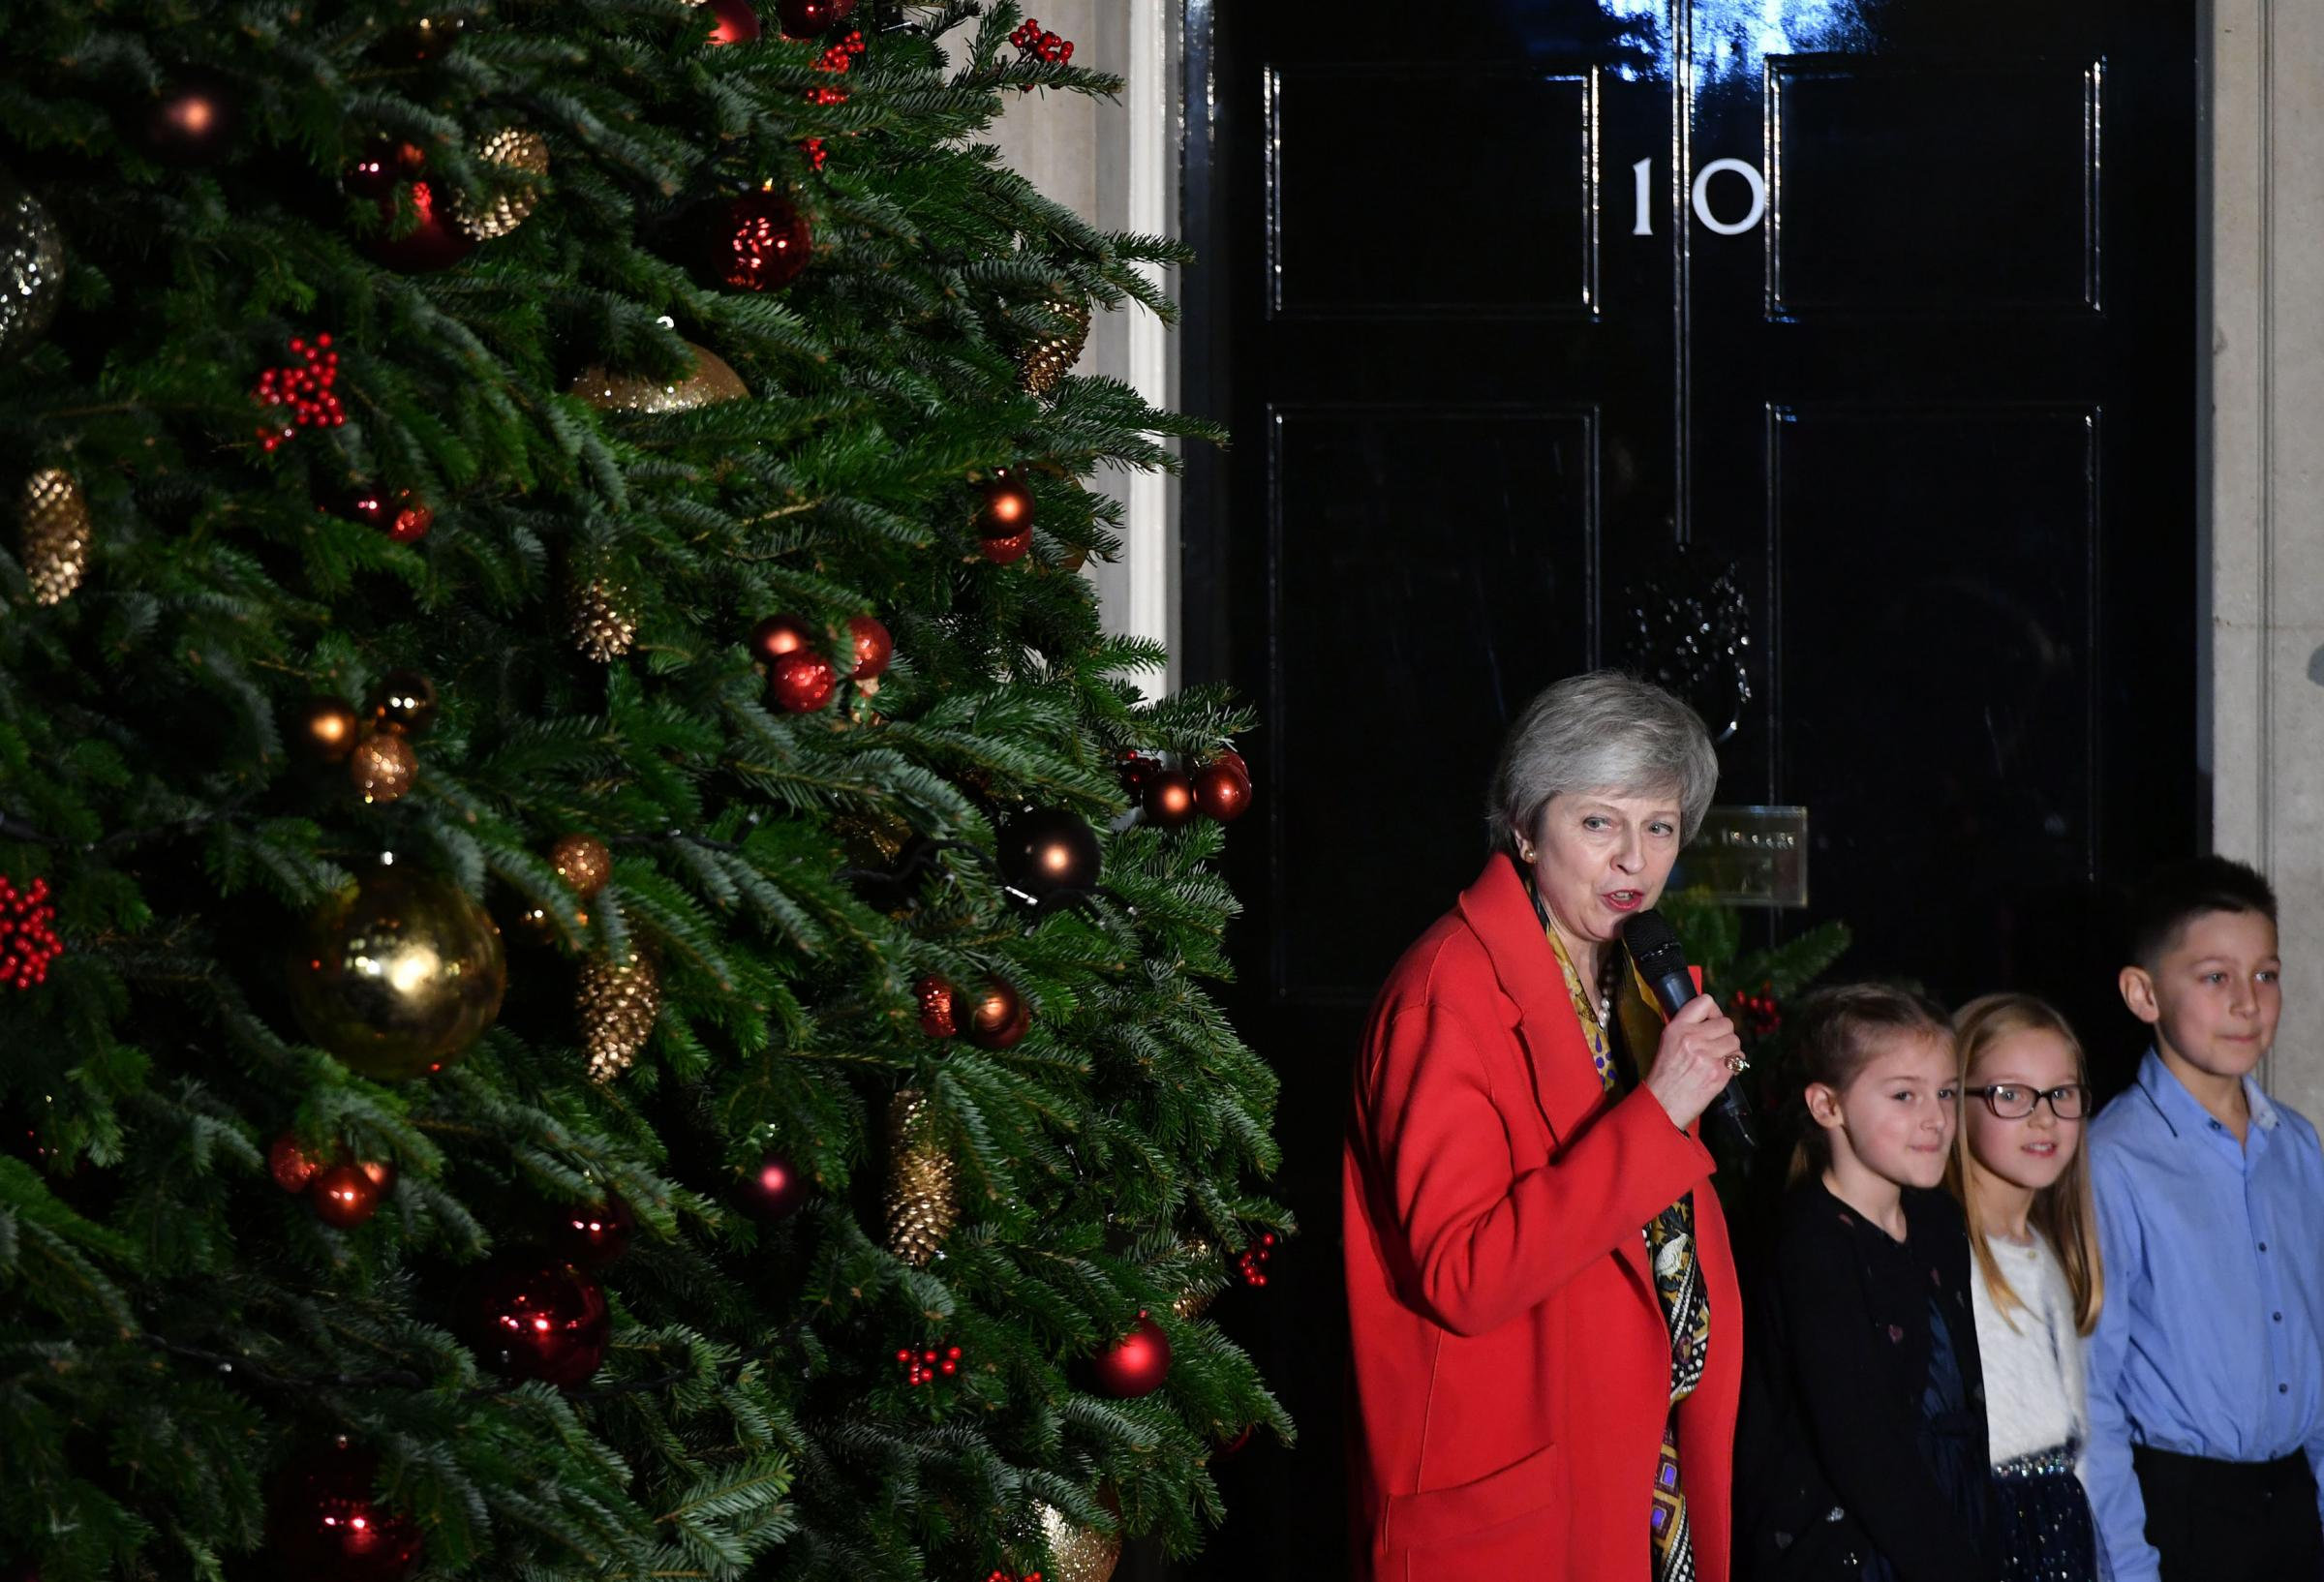 O Come All Ye Faithful. But not much festive cheer for May as she faces Commons defeat